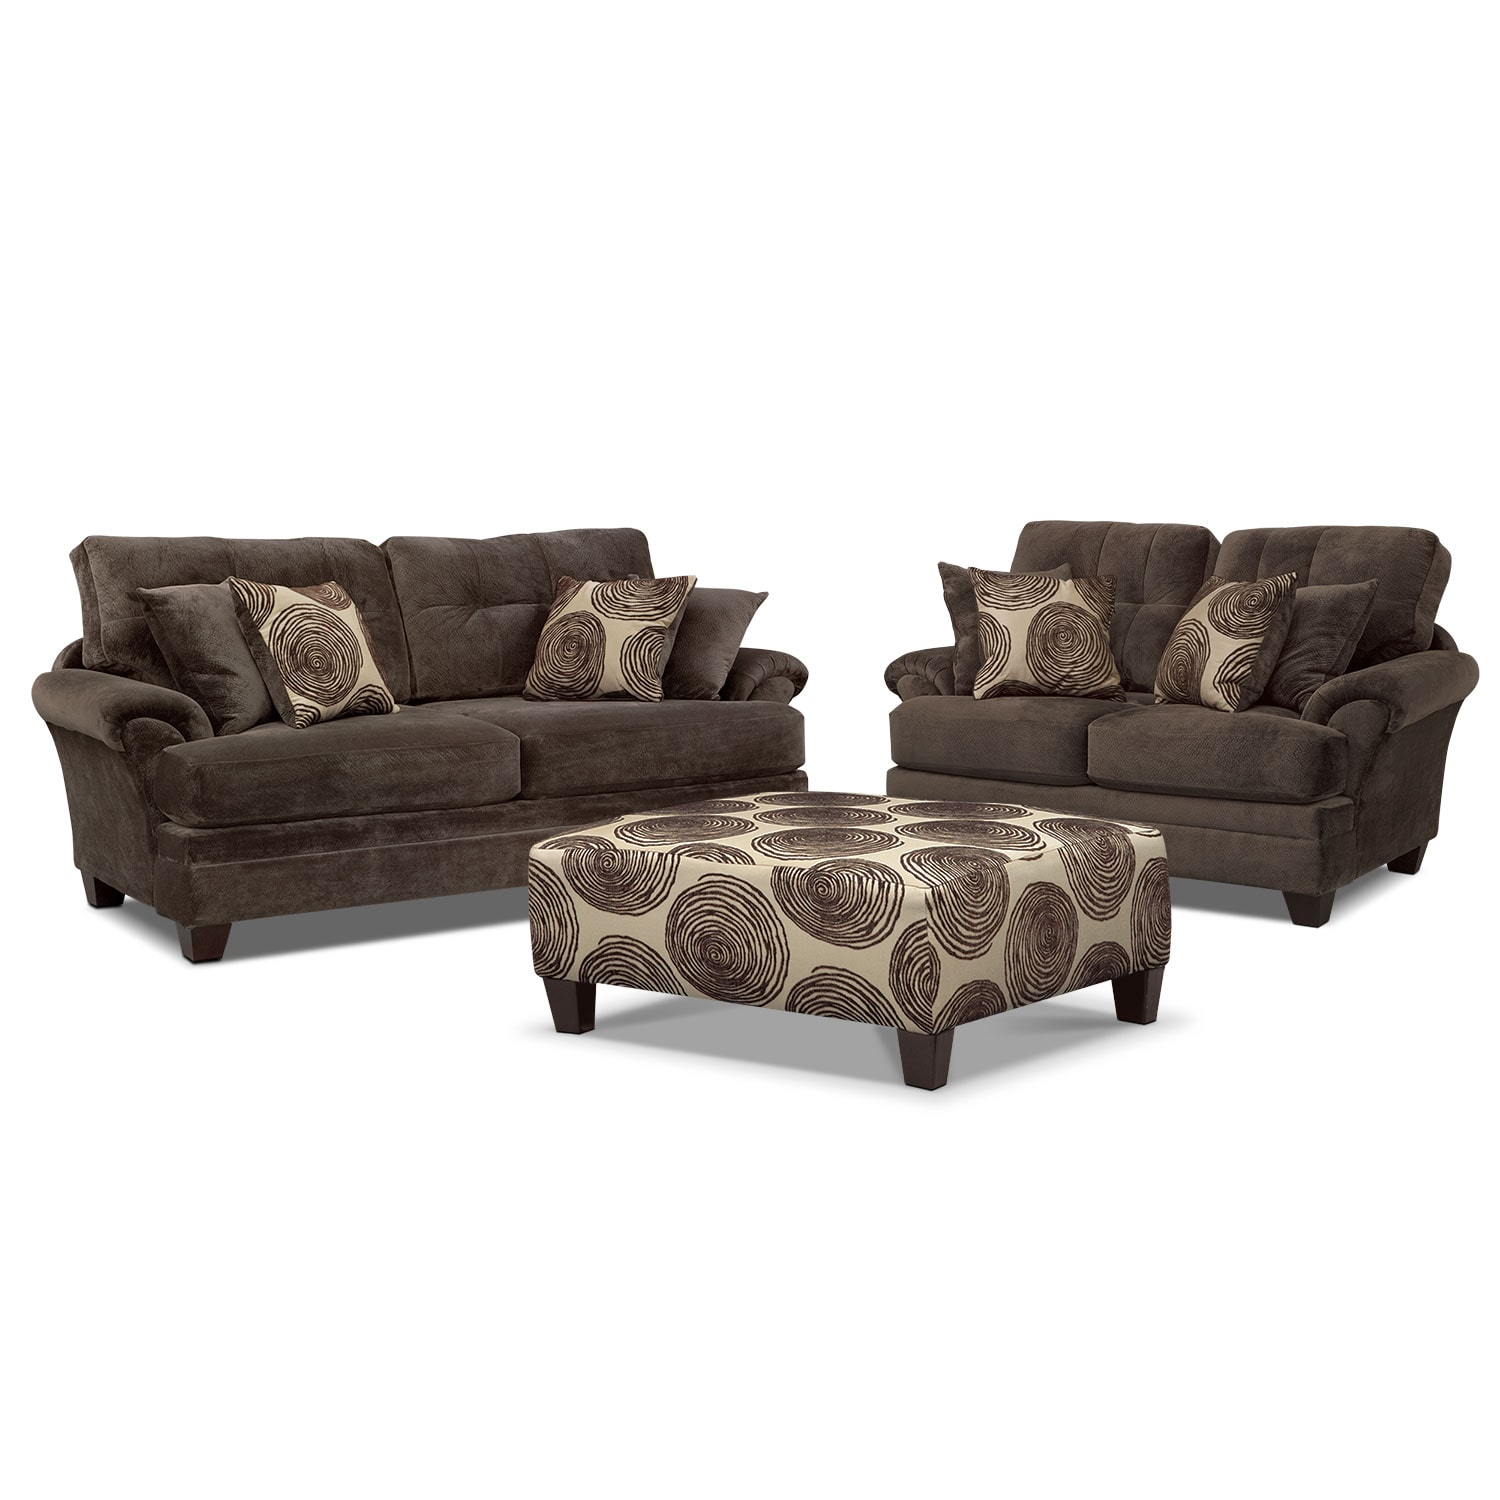 living room sofa and loveseat sets interior designs for cordelle cocktail ottoman set value city furniture